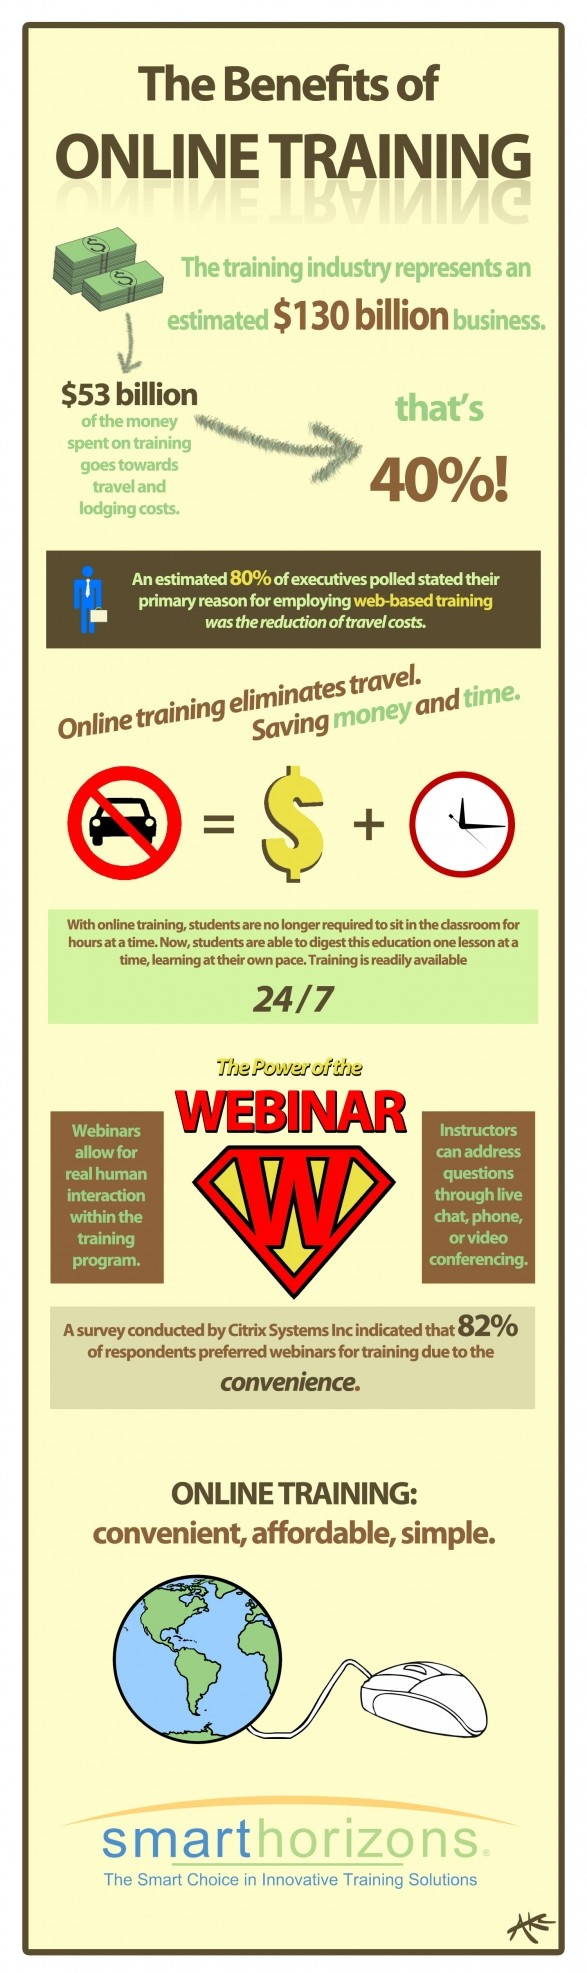 Are you training online? The Benefits of Online Training {Infographic}